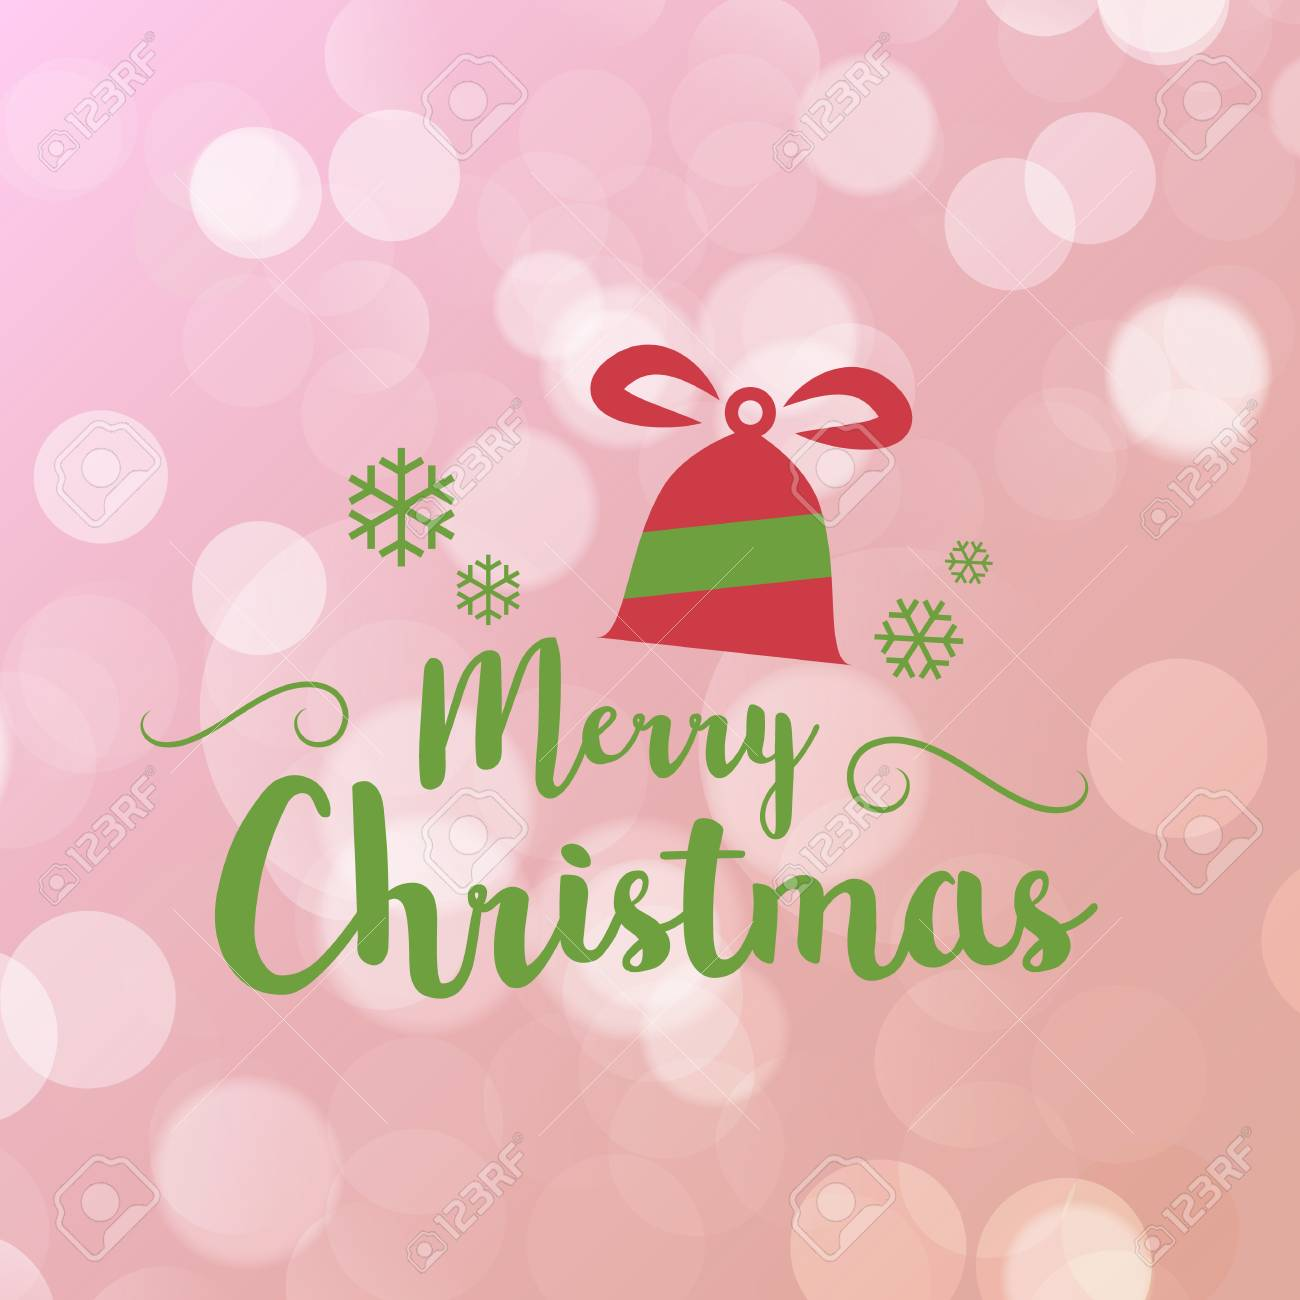 Merry Christmas And Happy New Year Greeting Card Typography Flyer Template  With Lettering. Bright Fall